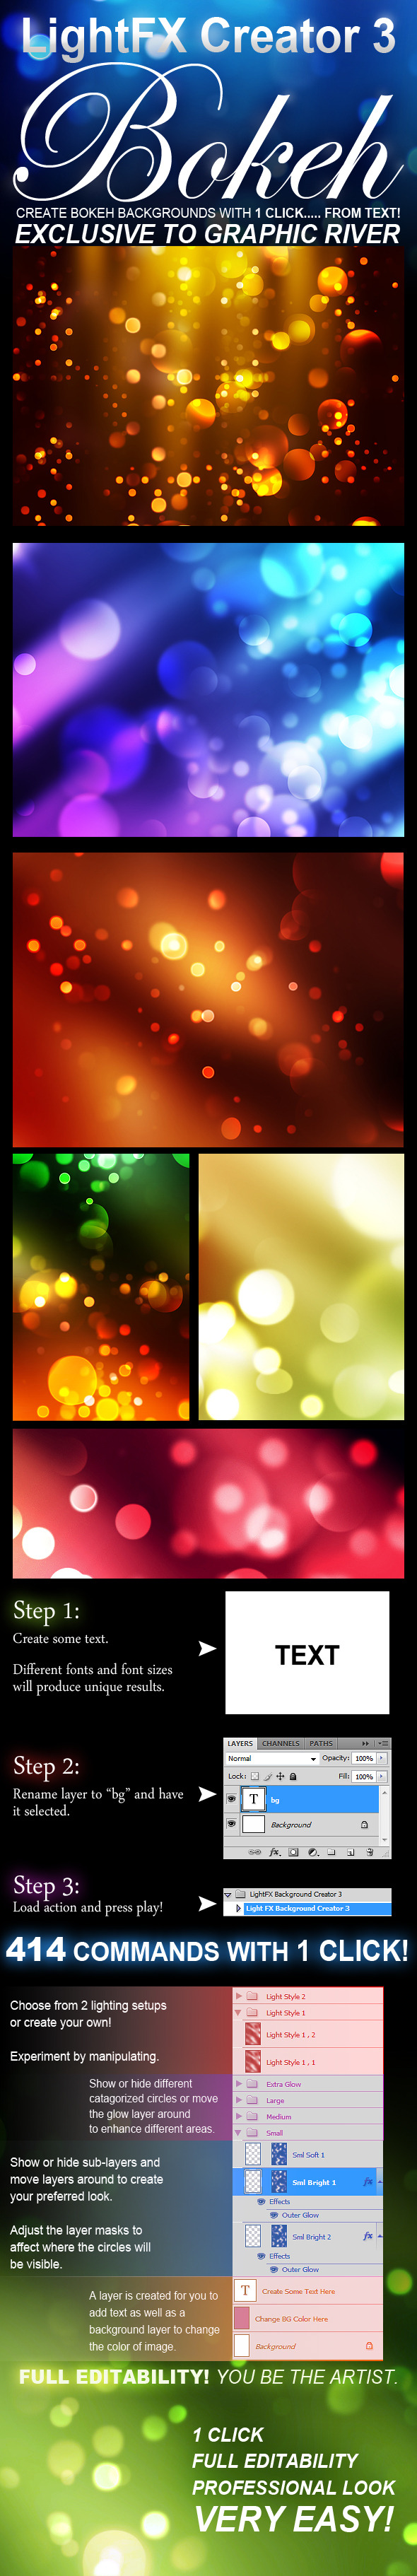 LightFX Background Creator 3 (Bokeh) - Utilities Actions